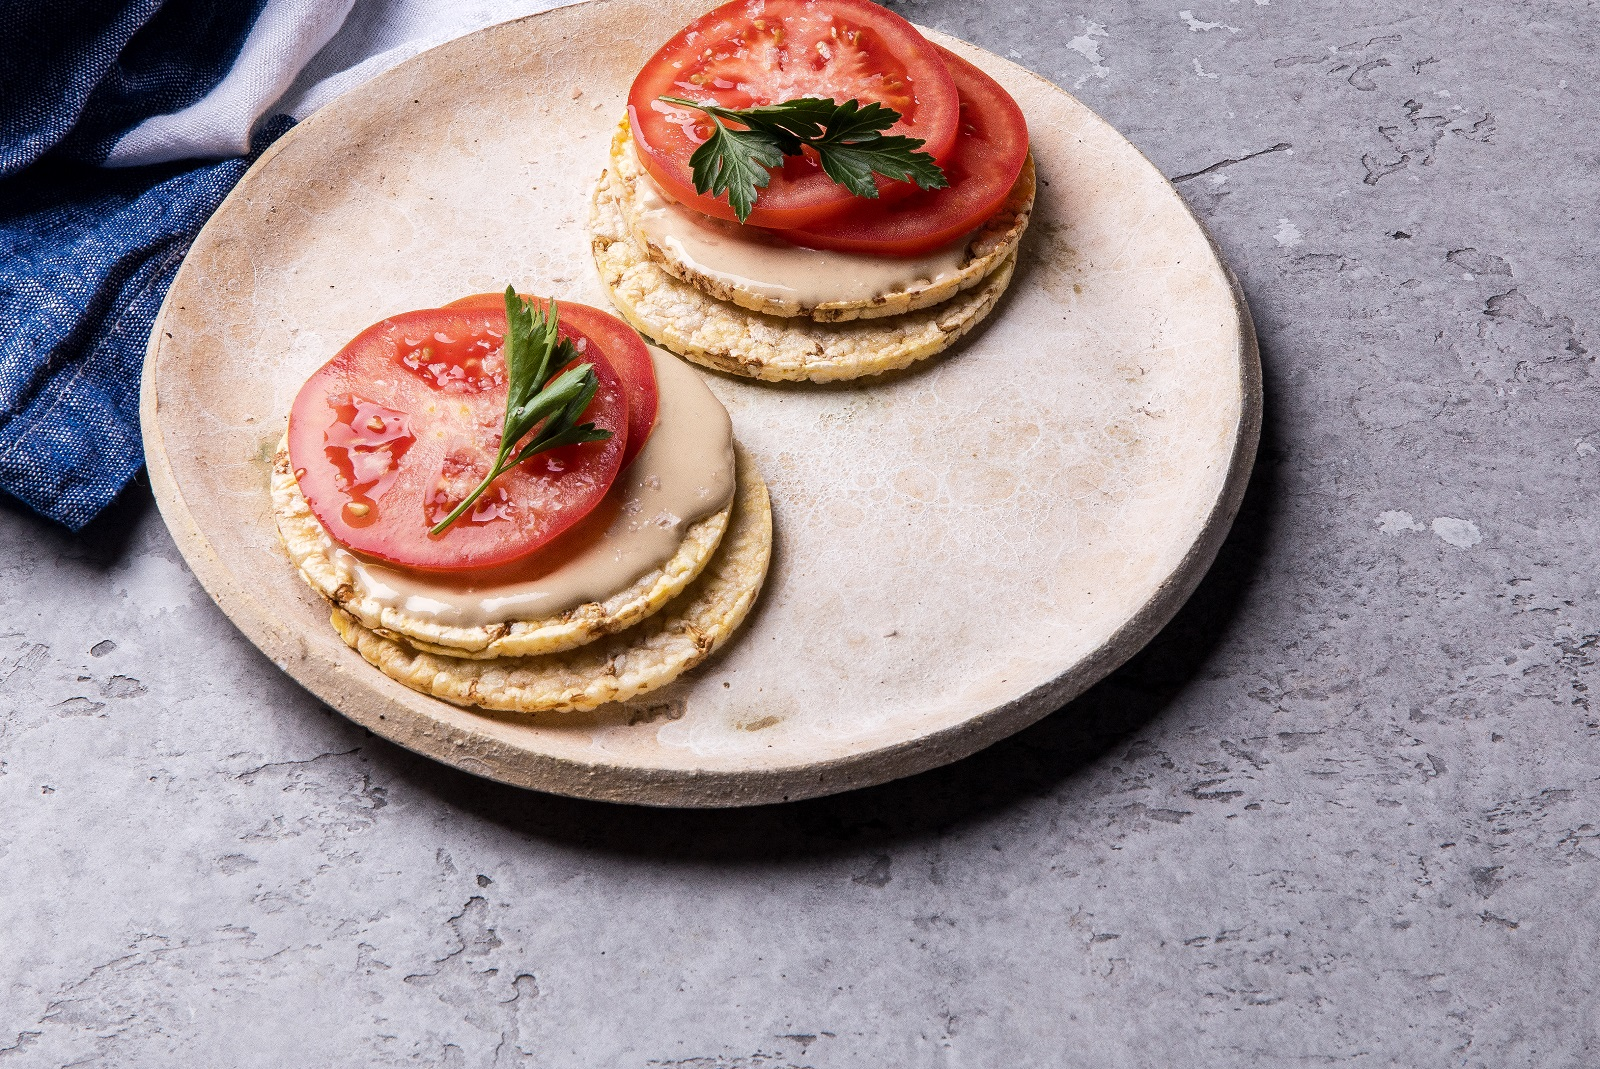 Tomato & Tahini on CORN THINS slices for lunch